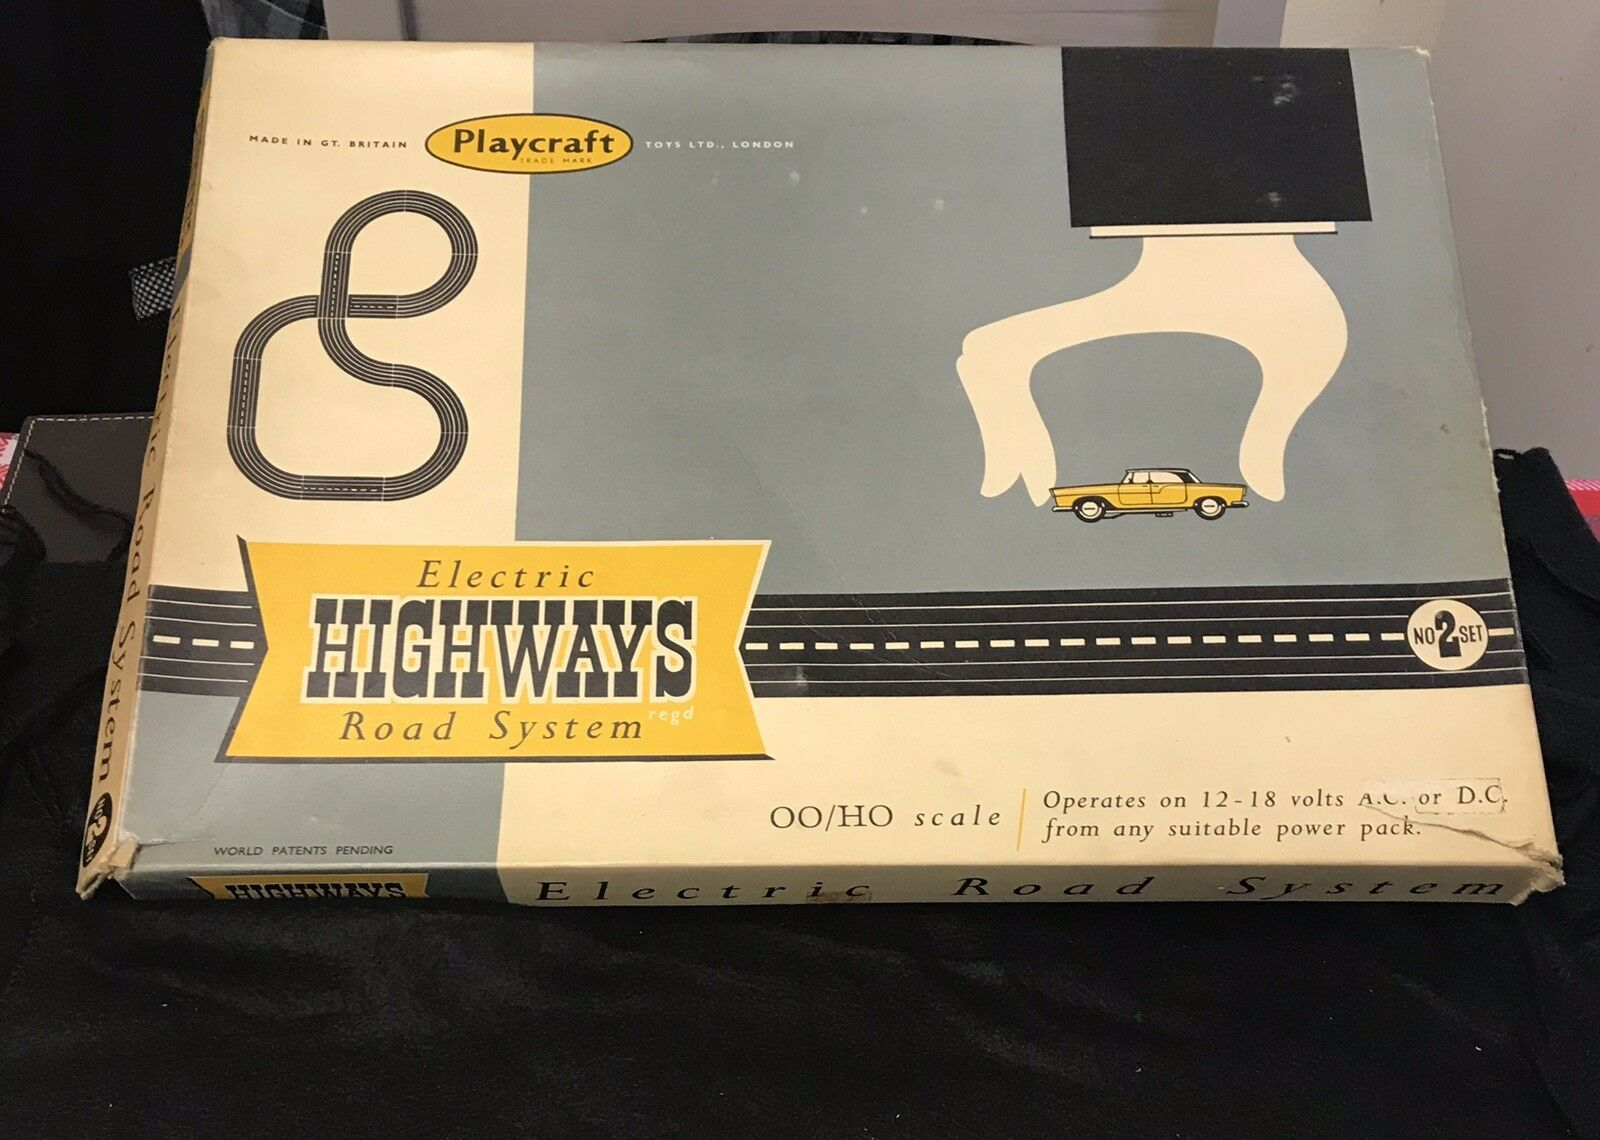 Playcraft Electric Highways Road System No 2